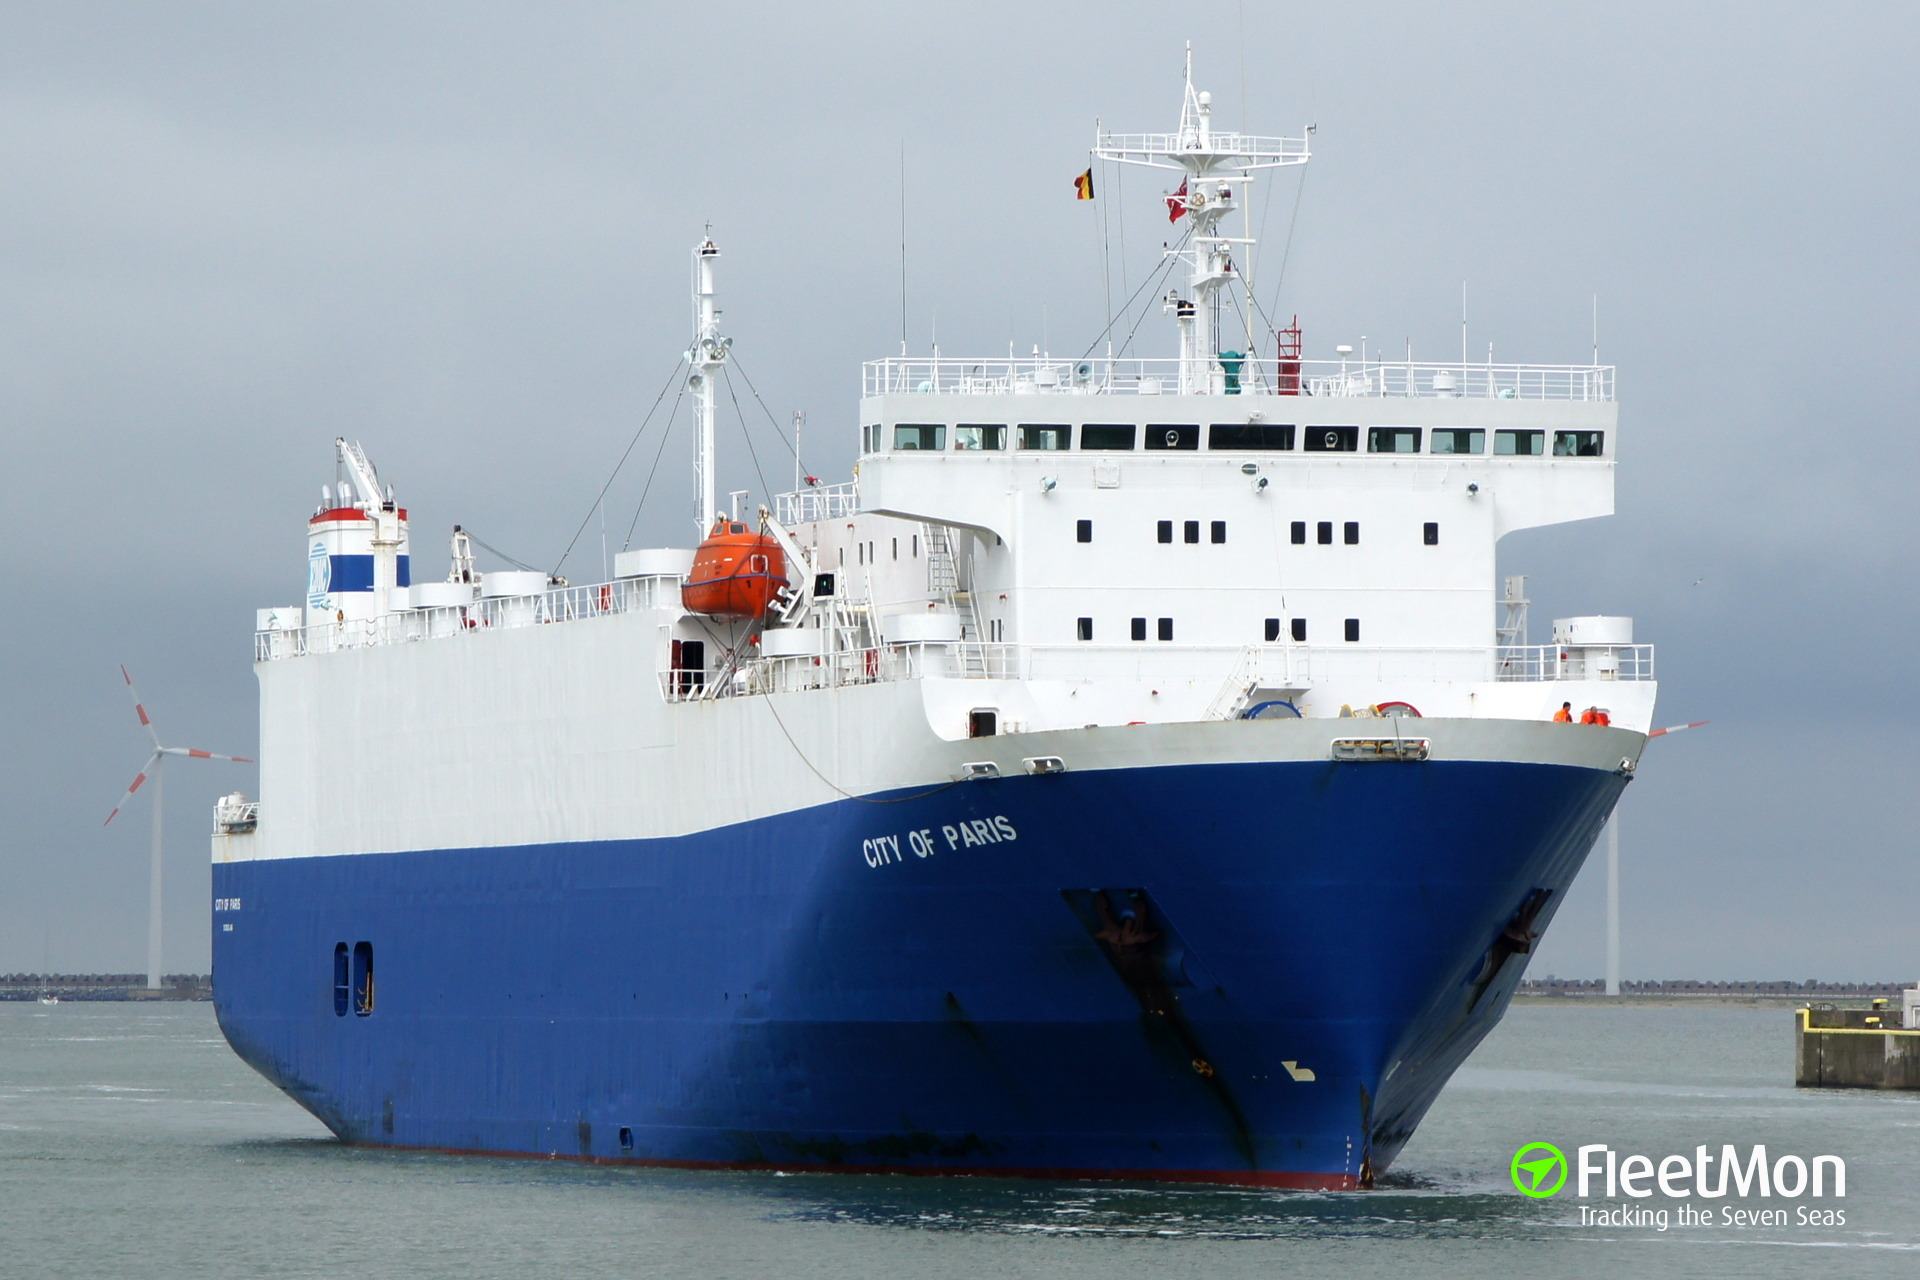 Car carrier City of Paris under tow to Falmouth, English Canal